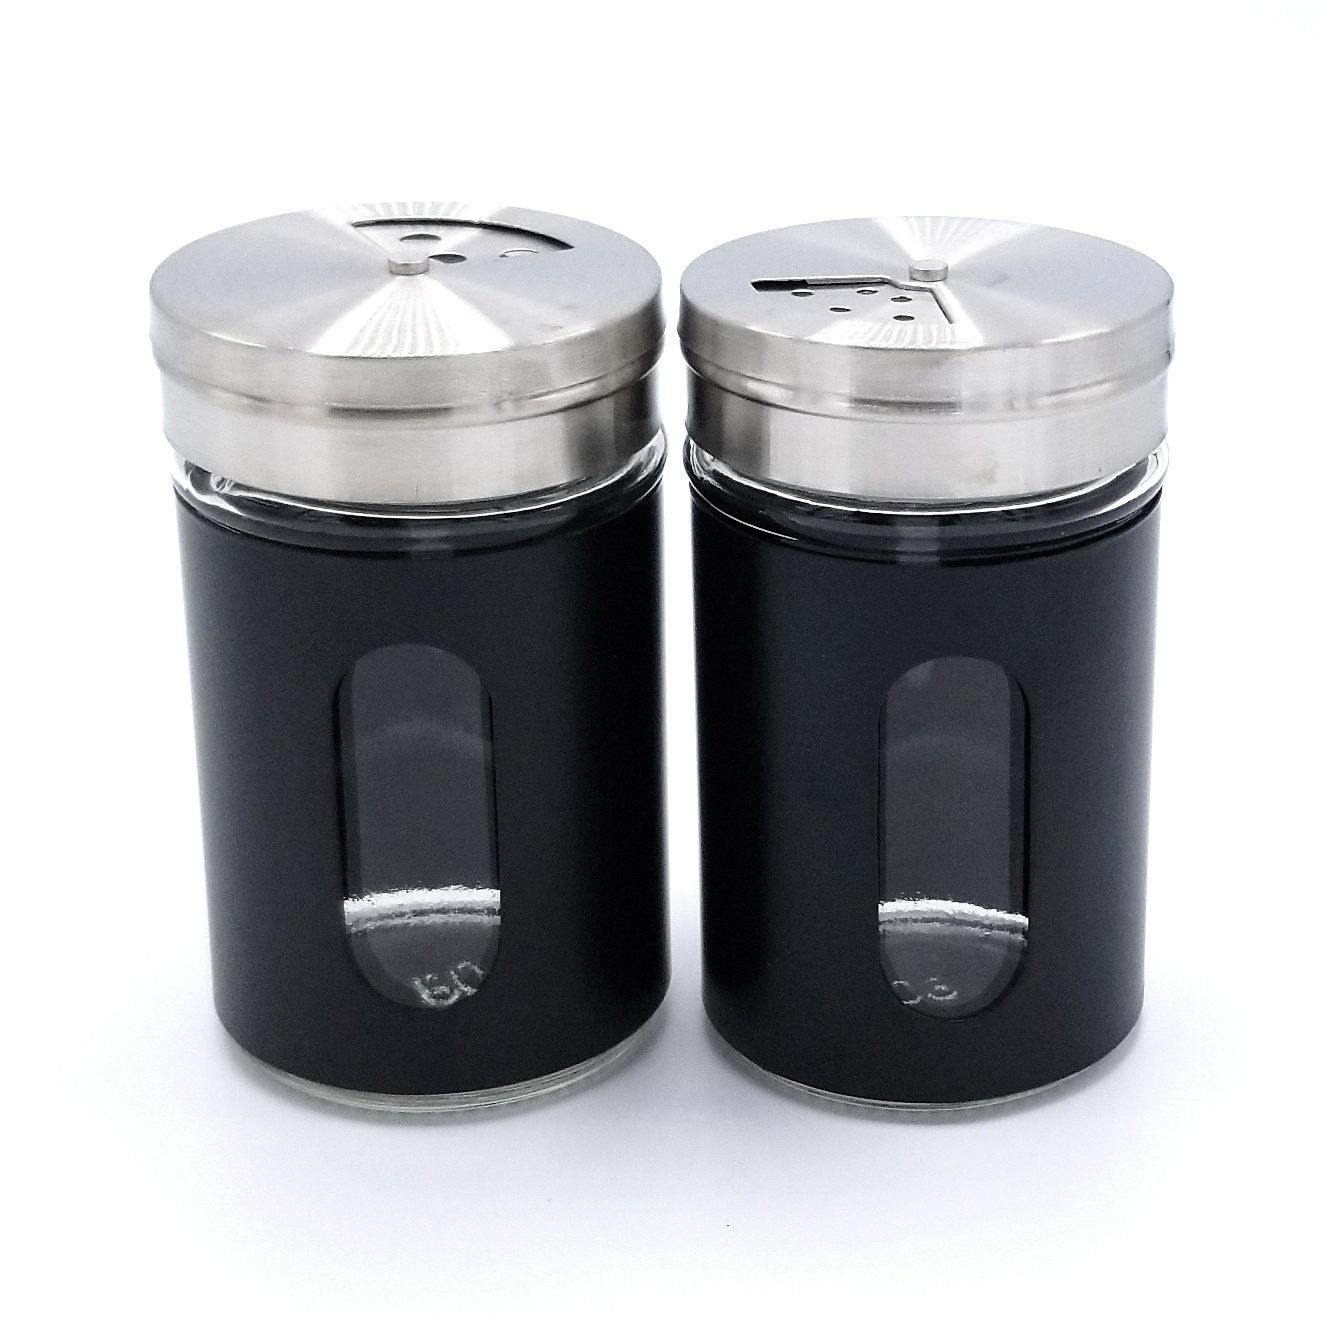 Black JVLM HOME Premium Glass Salt and Pepper Shakers Dispensers Set with Stainless Steel lids